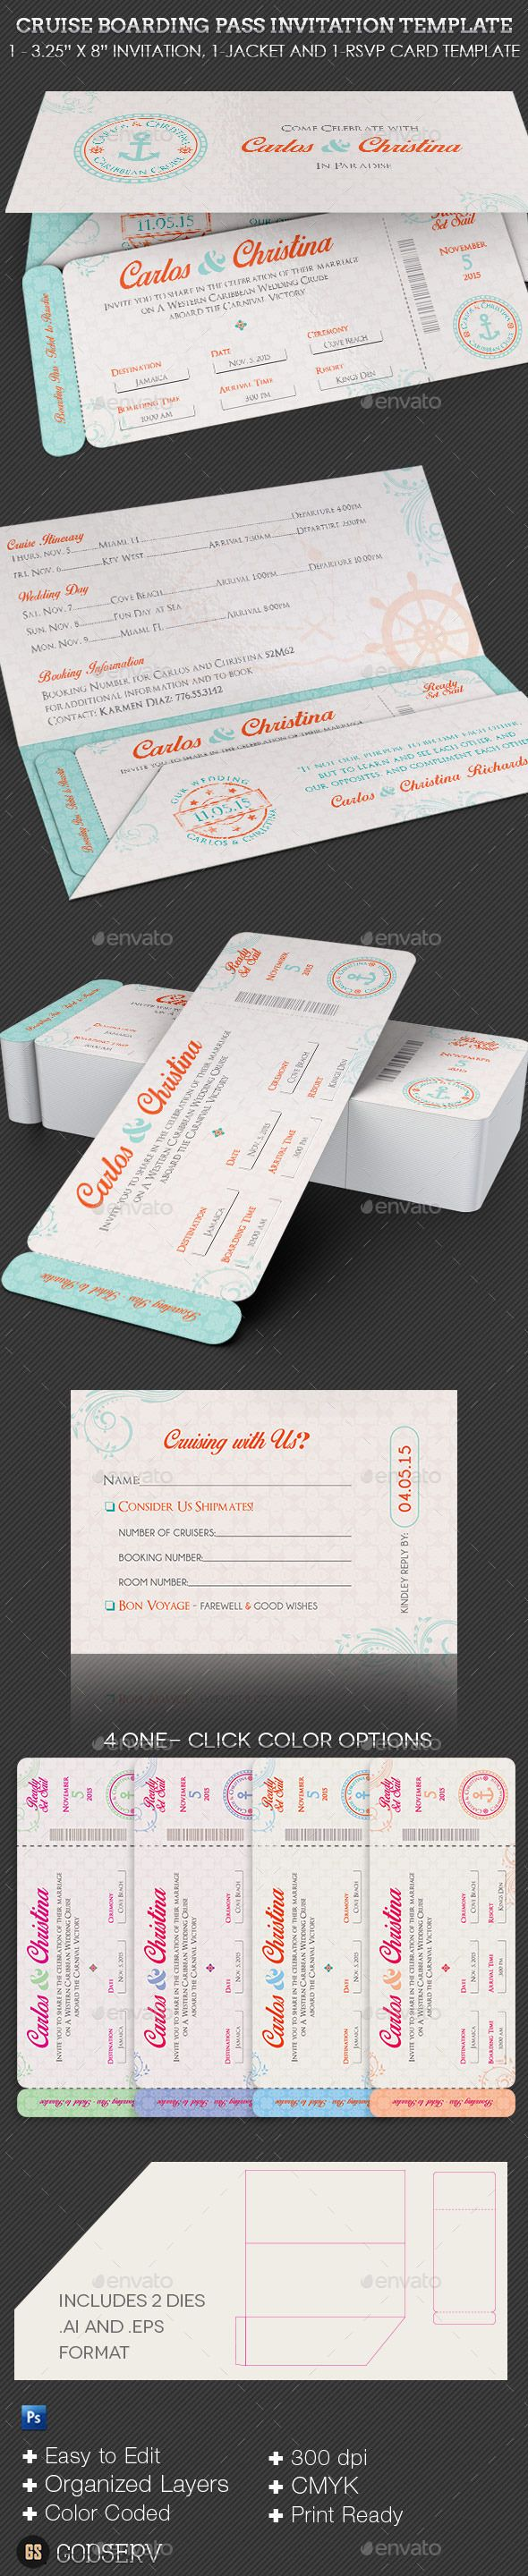 Wedding Cruise Boarding Pass Invitation Template | Boarding pass ...